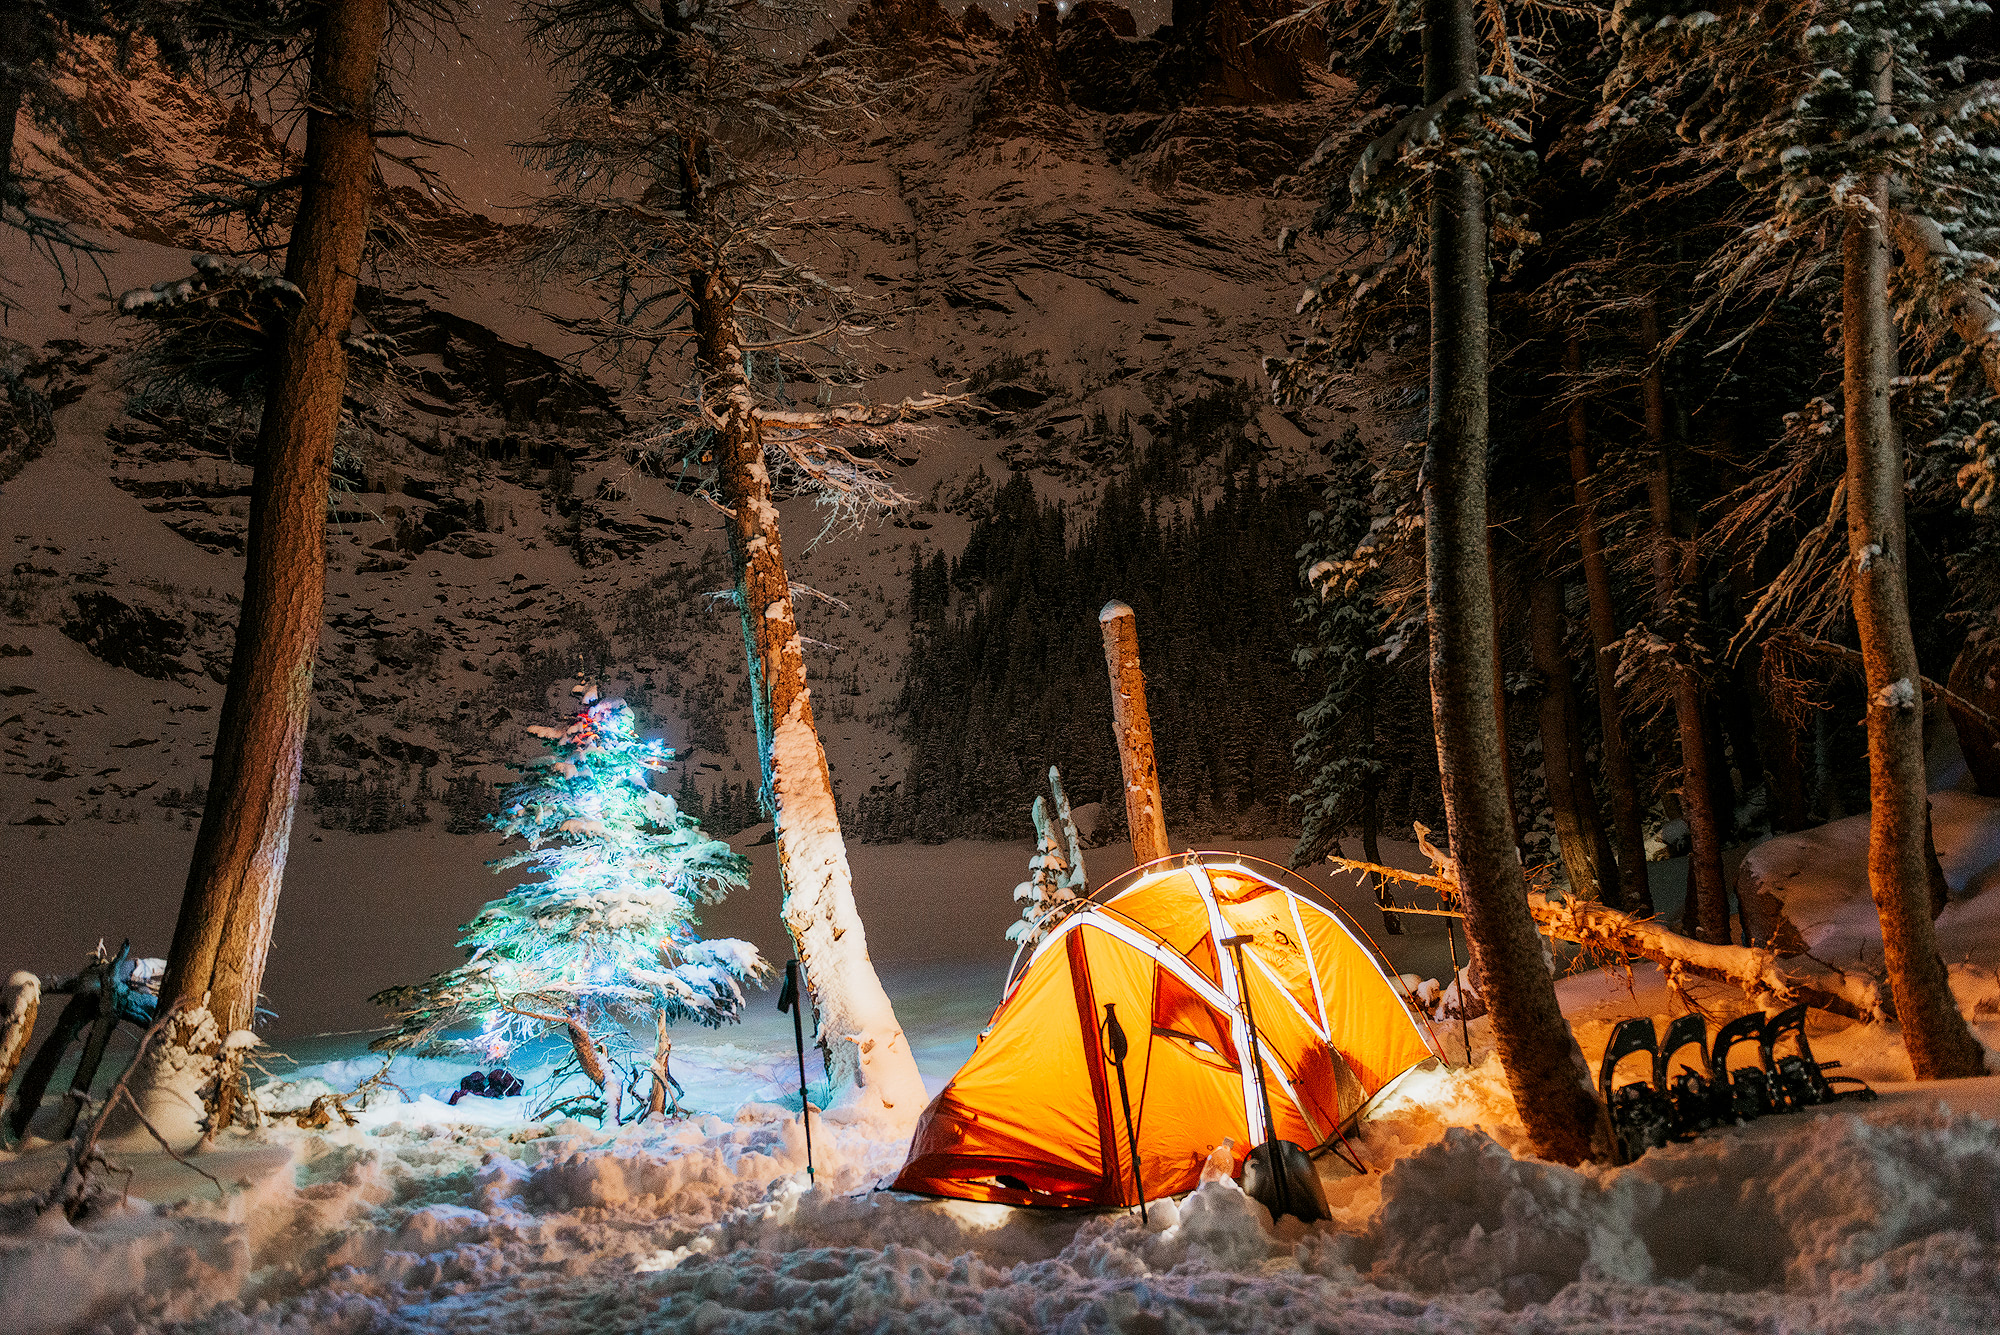 Night Photography Tips & Tricks - Light Up Your Winter. Renee Roaming